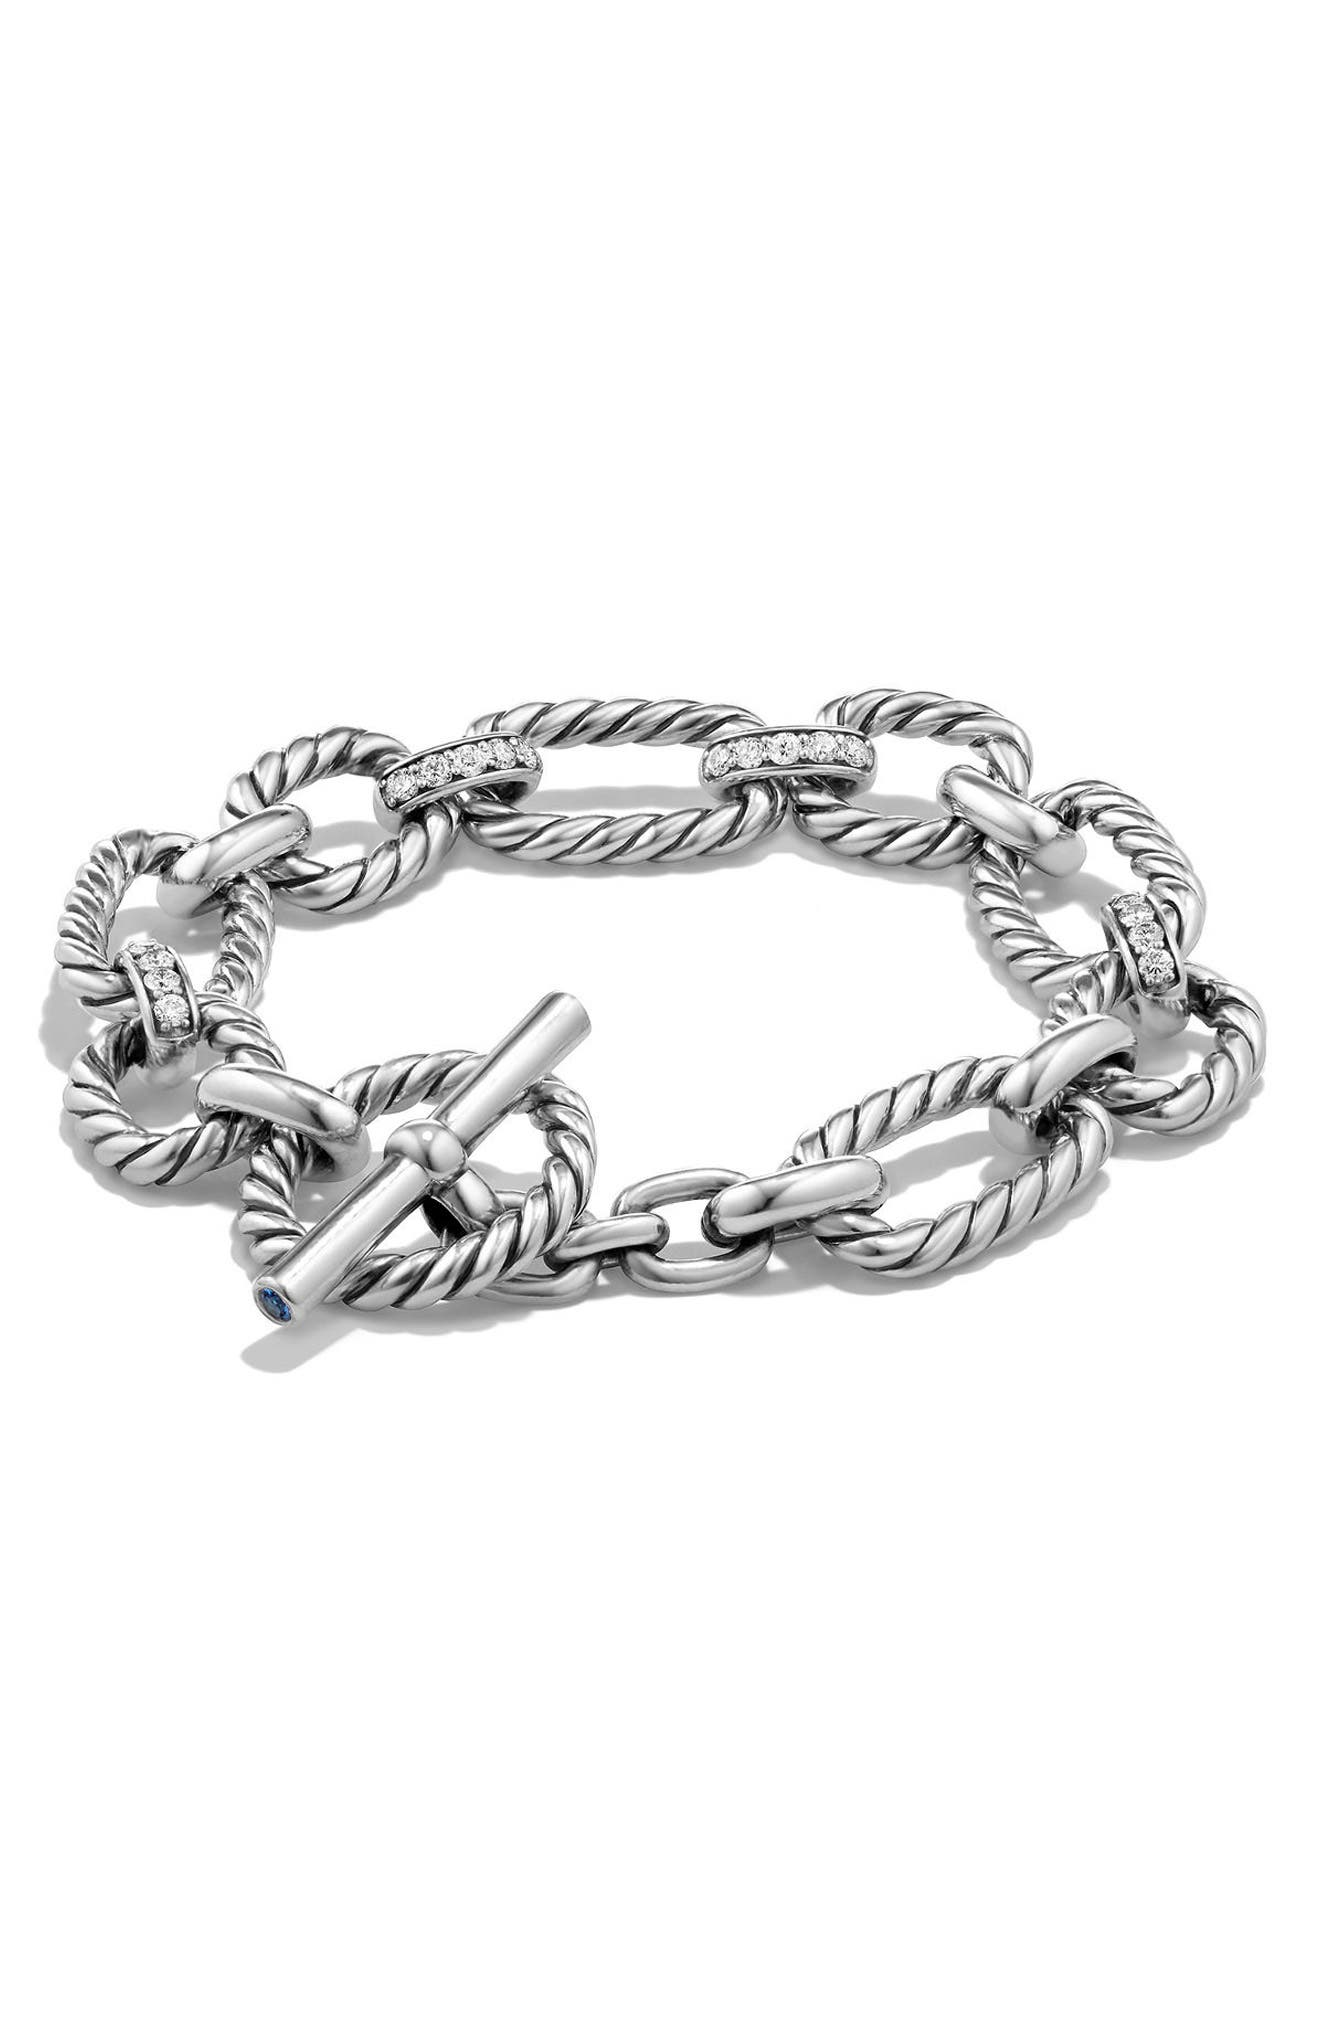 DAVID YURMAN 'Chain' Cushion Link Bracelet with Diamonds